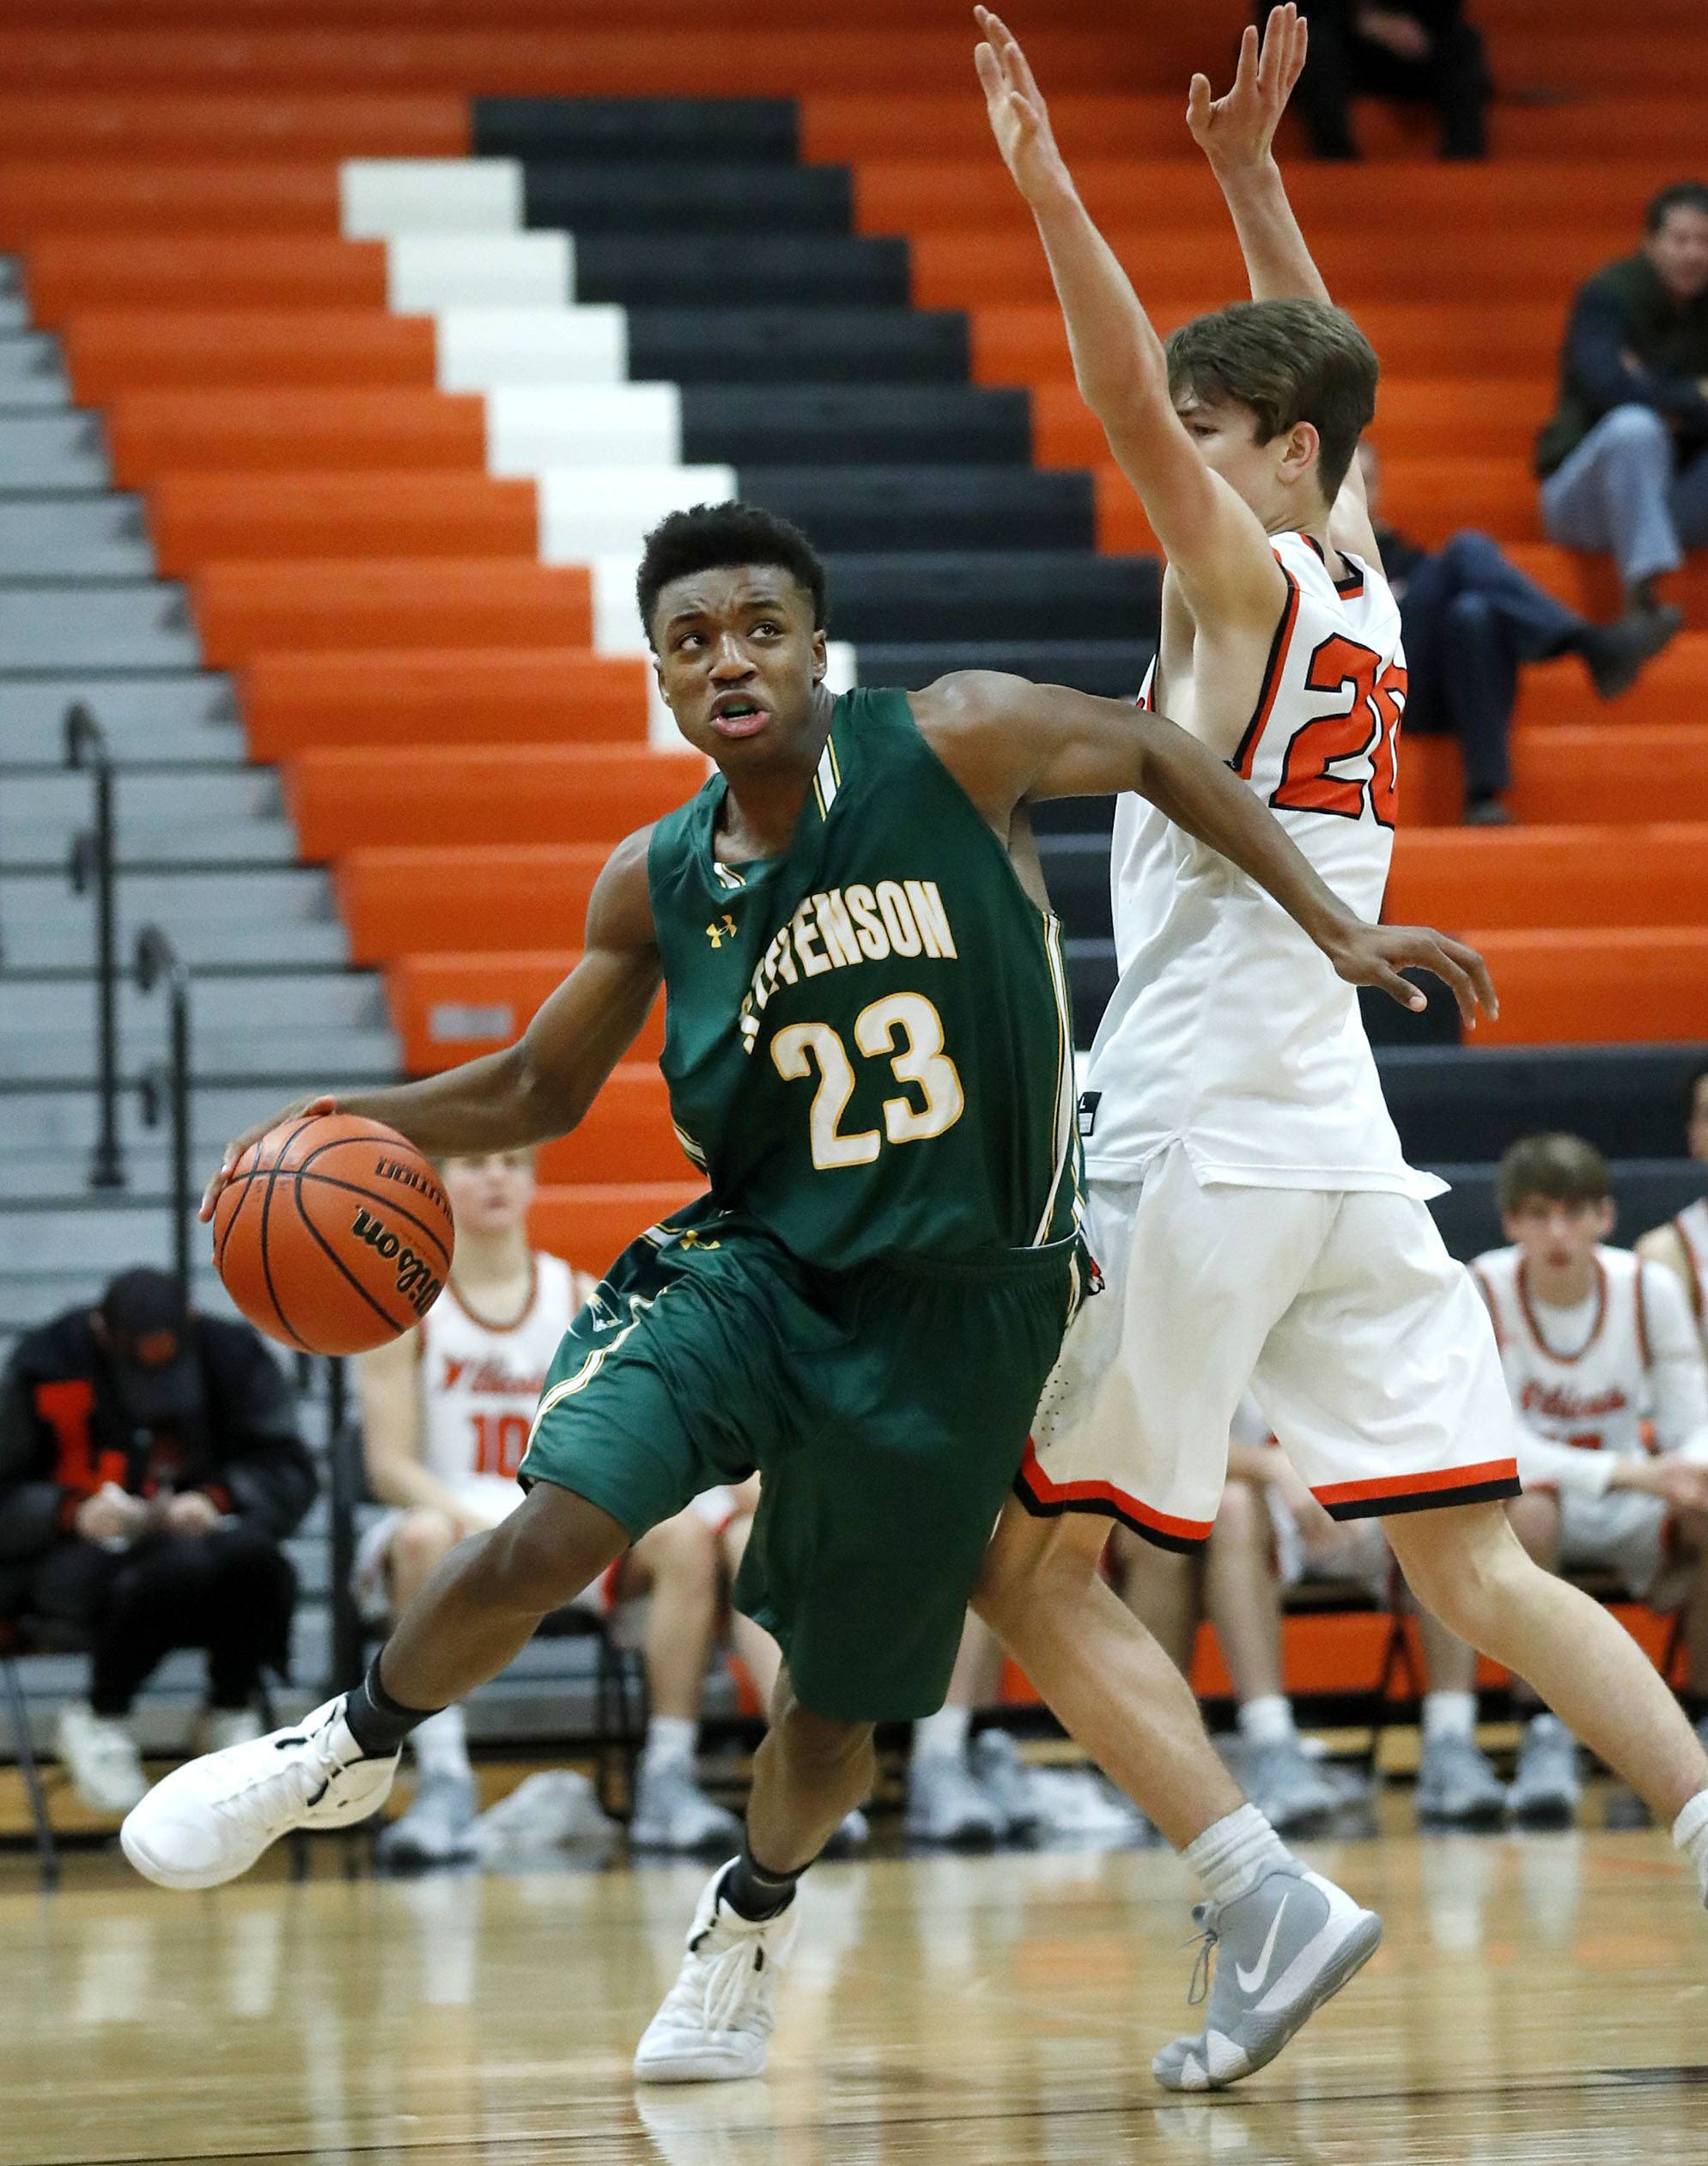 Stevenson's RJ Holmes (23) drives on Libertyville's Patrick Graham during their game Tuesday night in Libertyville.